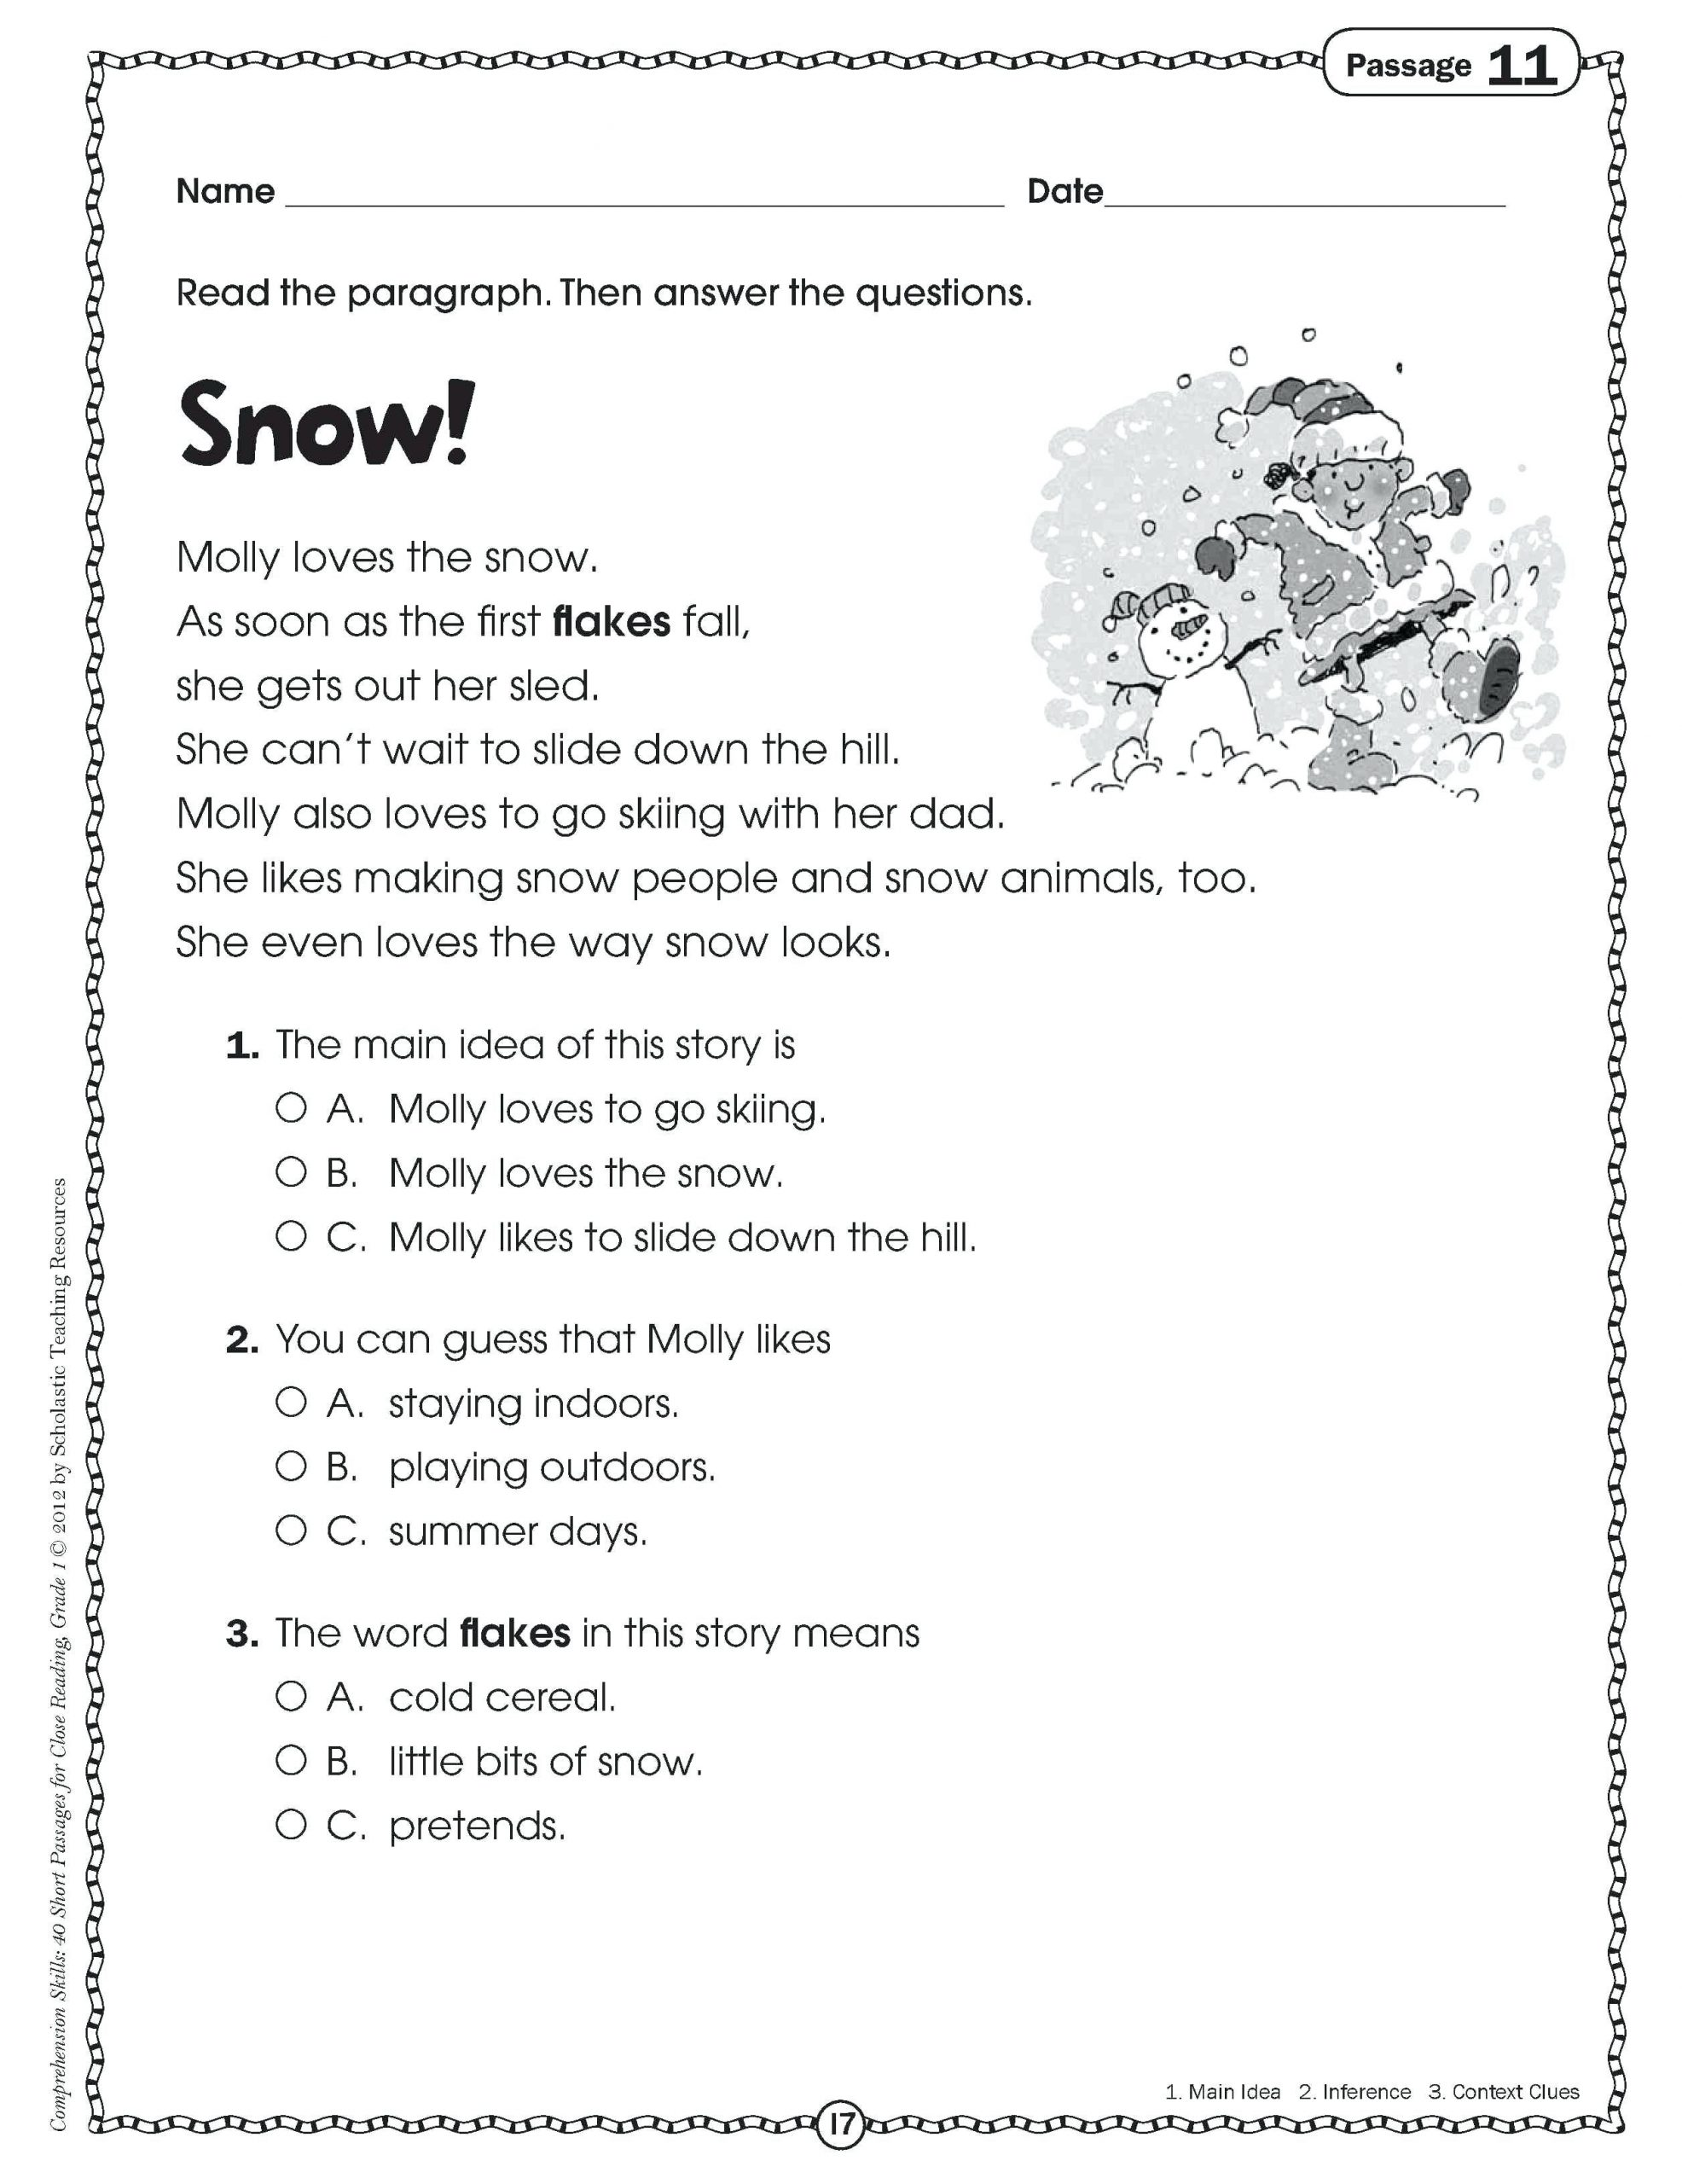 Context Clues Worksheets 4th Grade Main Idea Worksheets 4th Grade to Printable Math Worksheet